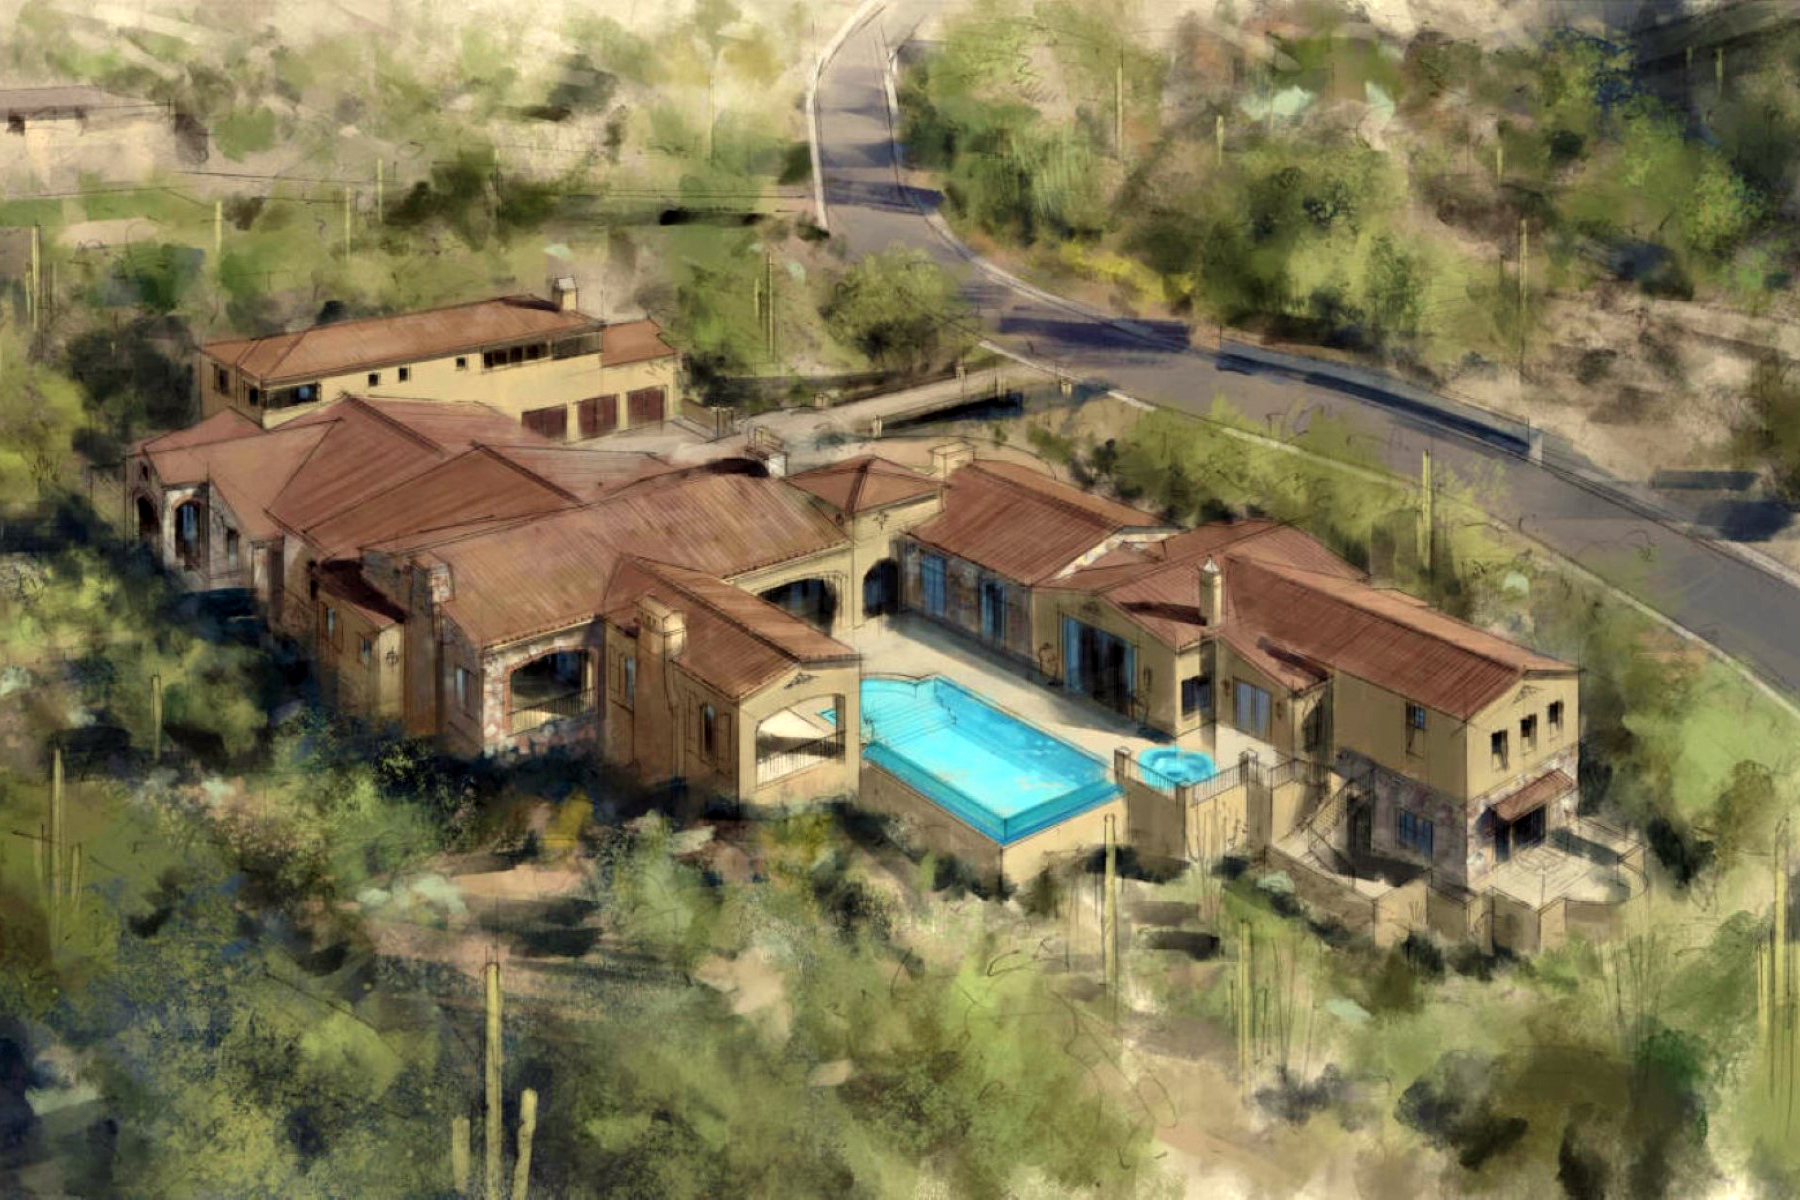 Villa per Vendita alle ore Stunning Silverleaf Luxury New Build With Valley Views 11004 E Feathersong Lane Scottsdale, Arizona 85255 Stati Uniti